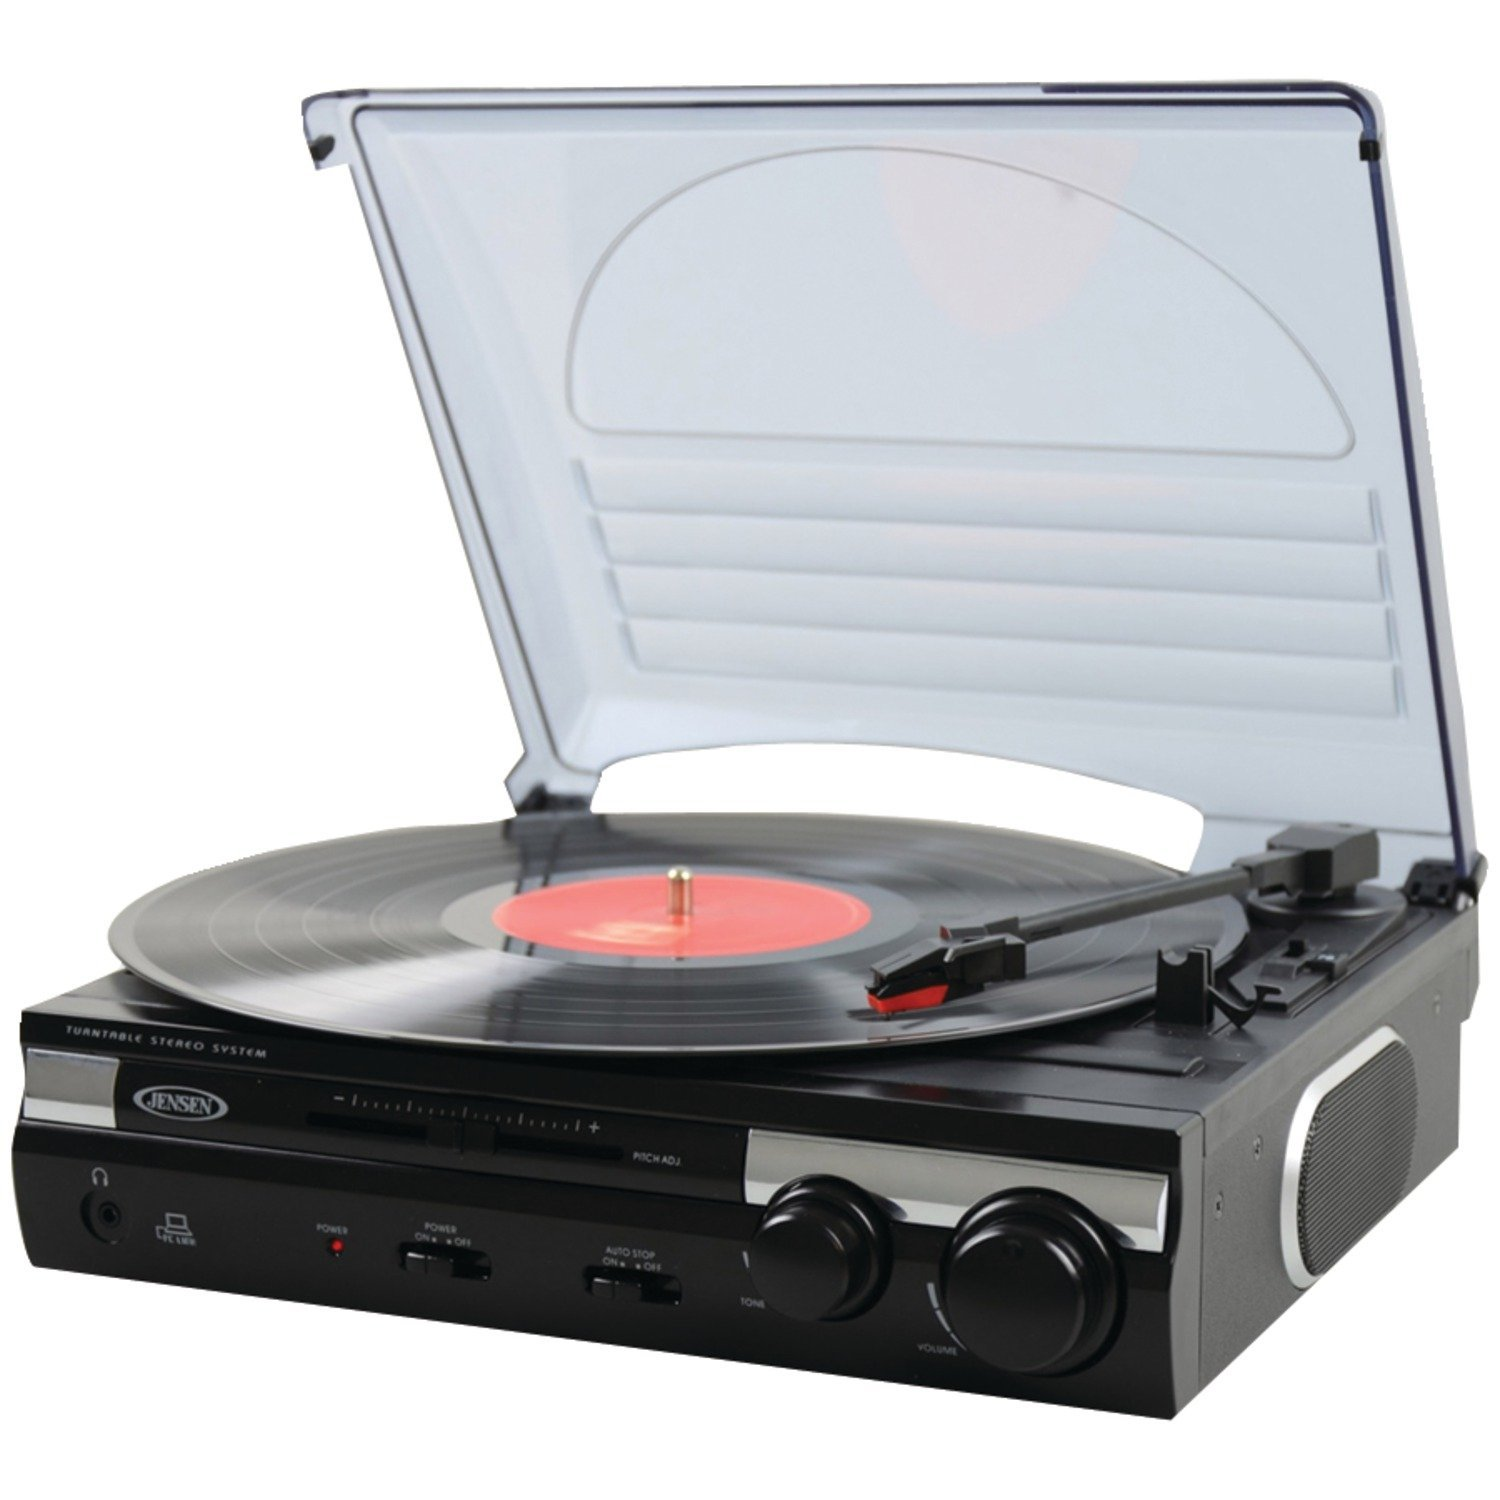 Jensen JTA-230 Turntable Black Friday & Cyber Monday Deals